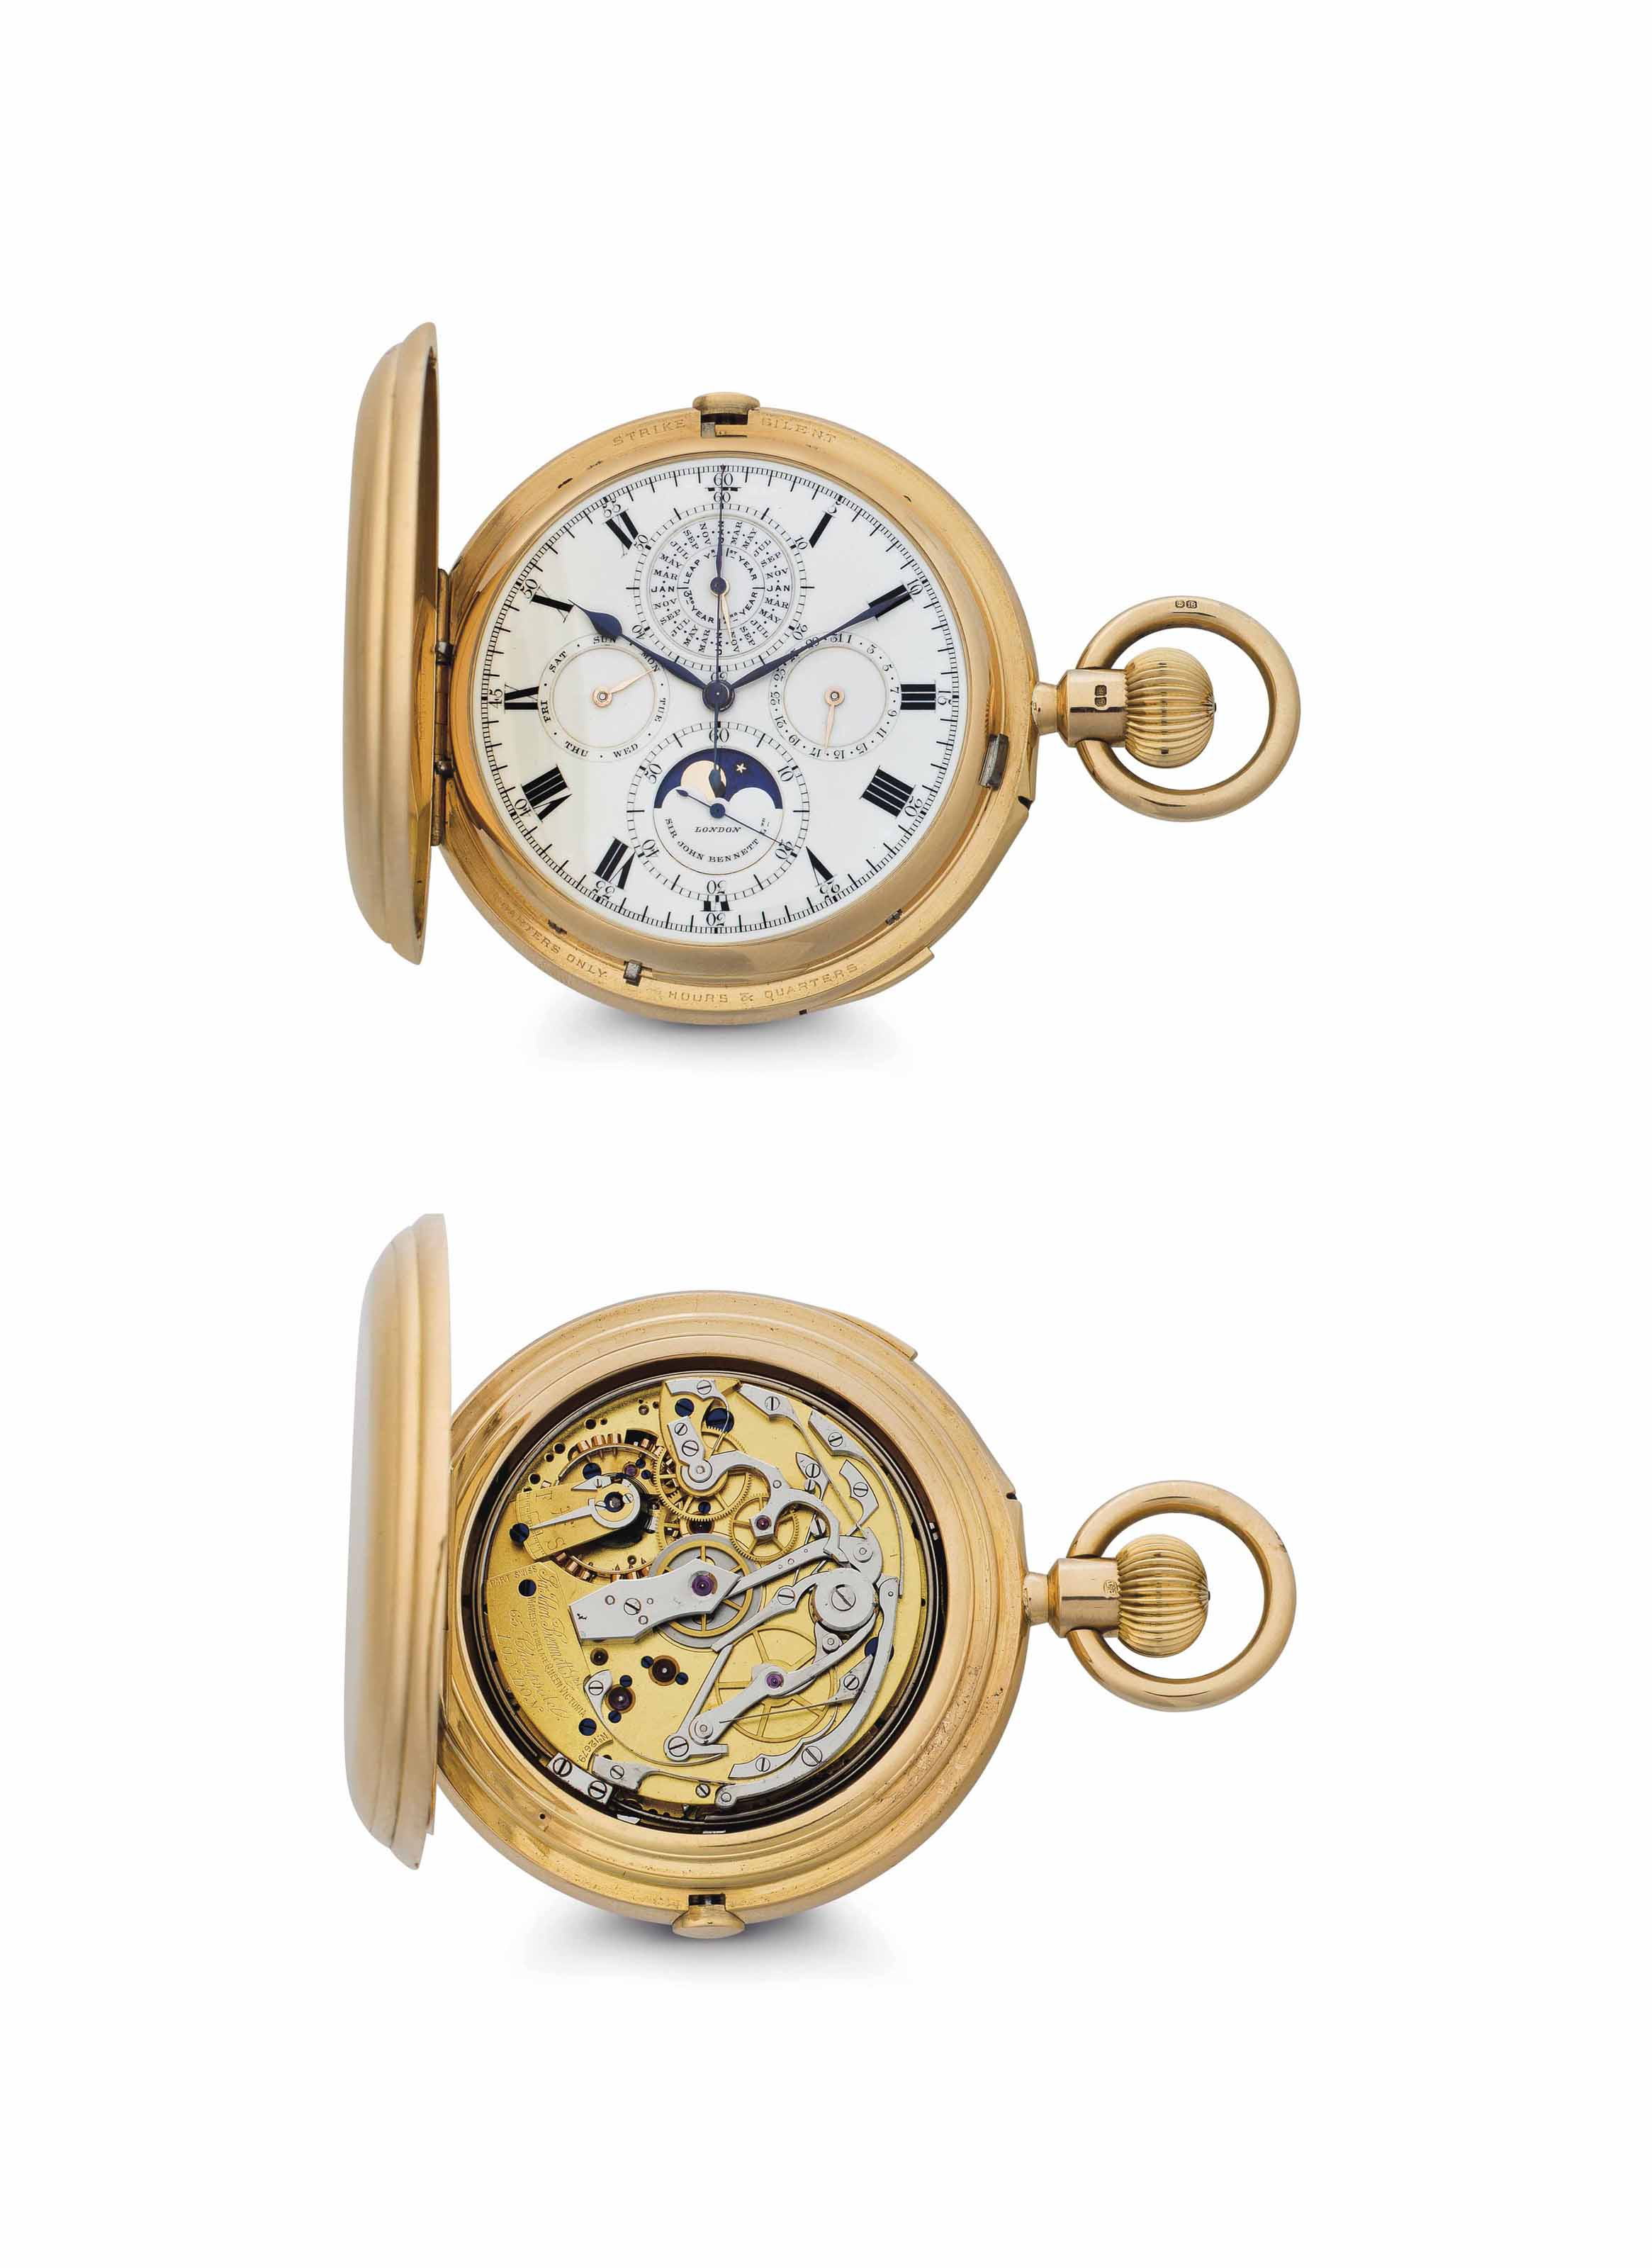 John Bennett.  A Very Rare and Exceptional 18k Gold Hunter Case Minute Repeating Perpetual Calendar Chronograph Clock Watch with Grande and Petite Sonnerie and Moon Phases